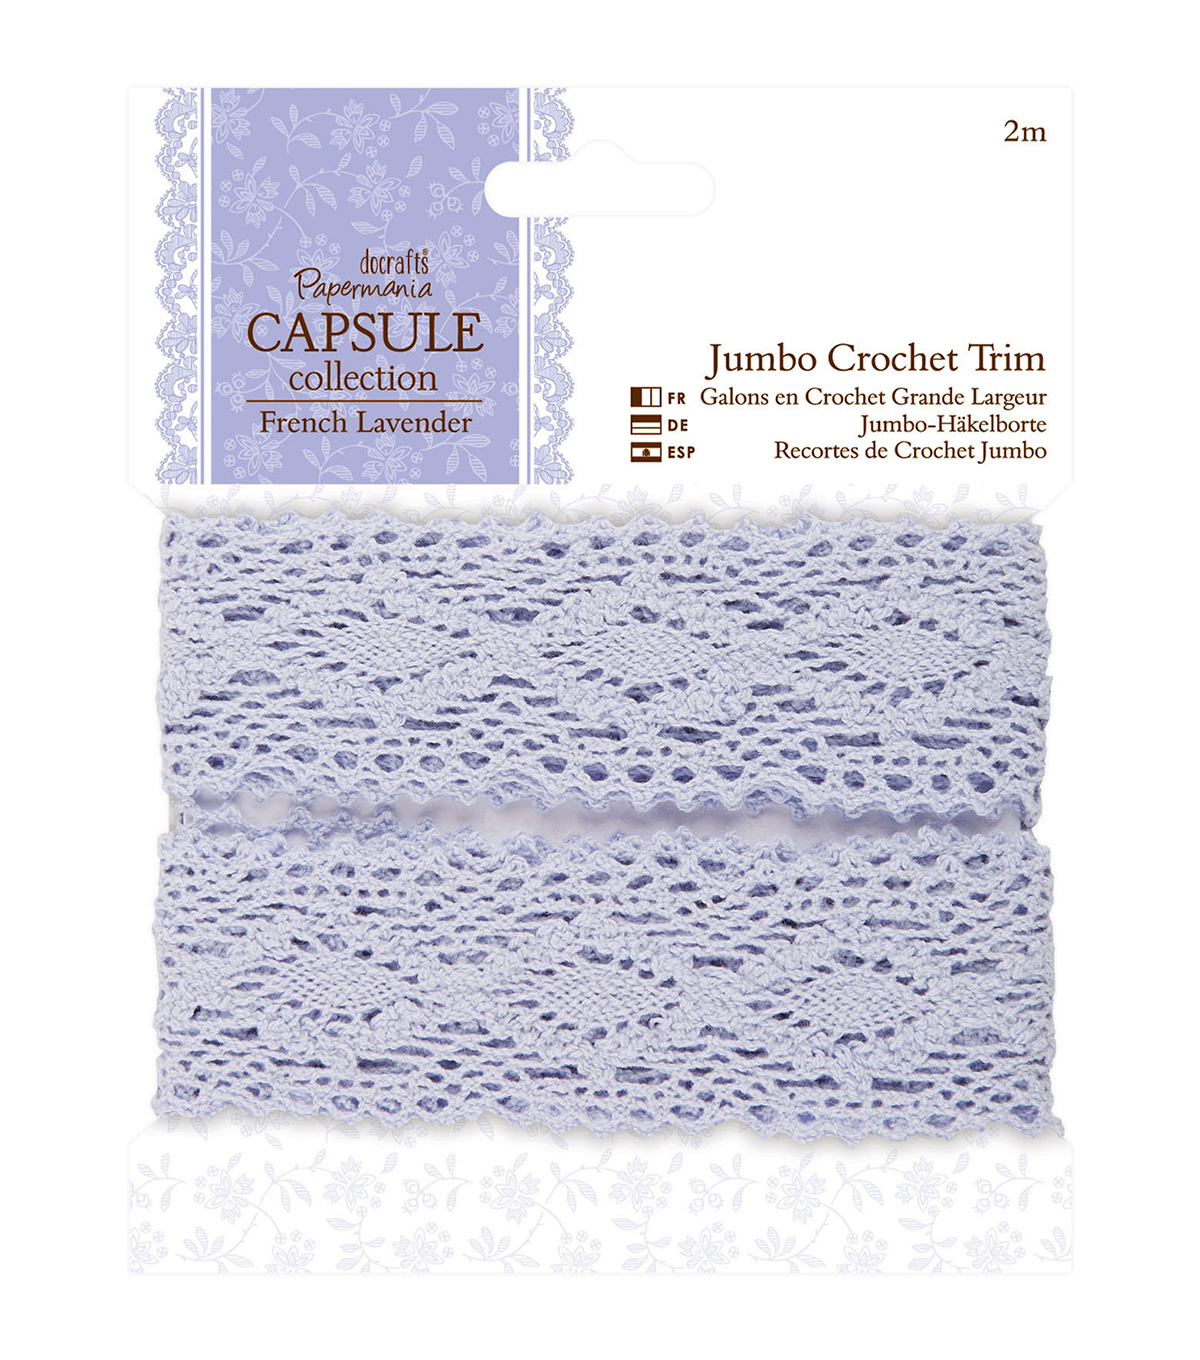 Papermania Capsule French Lavender Jumbo Crochet Trim